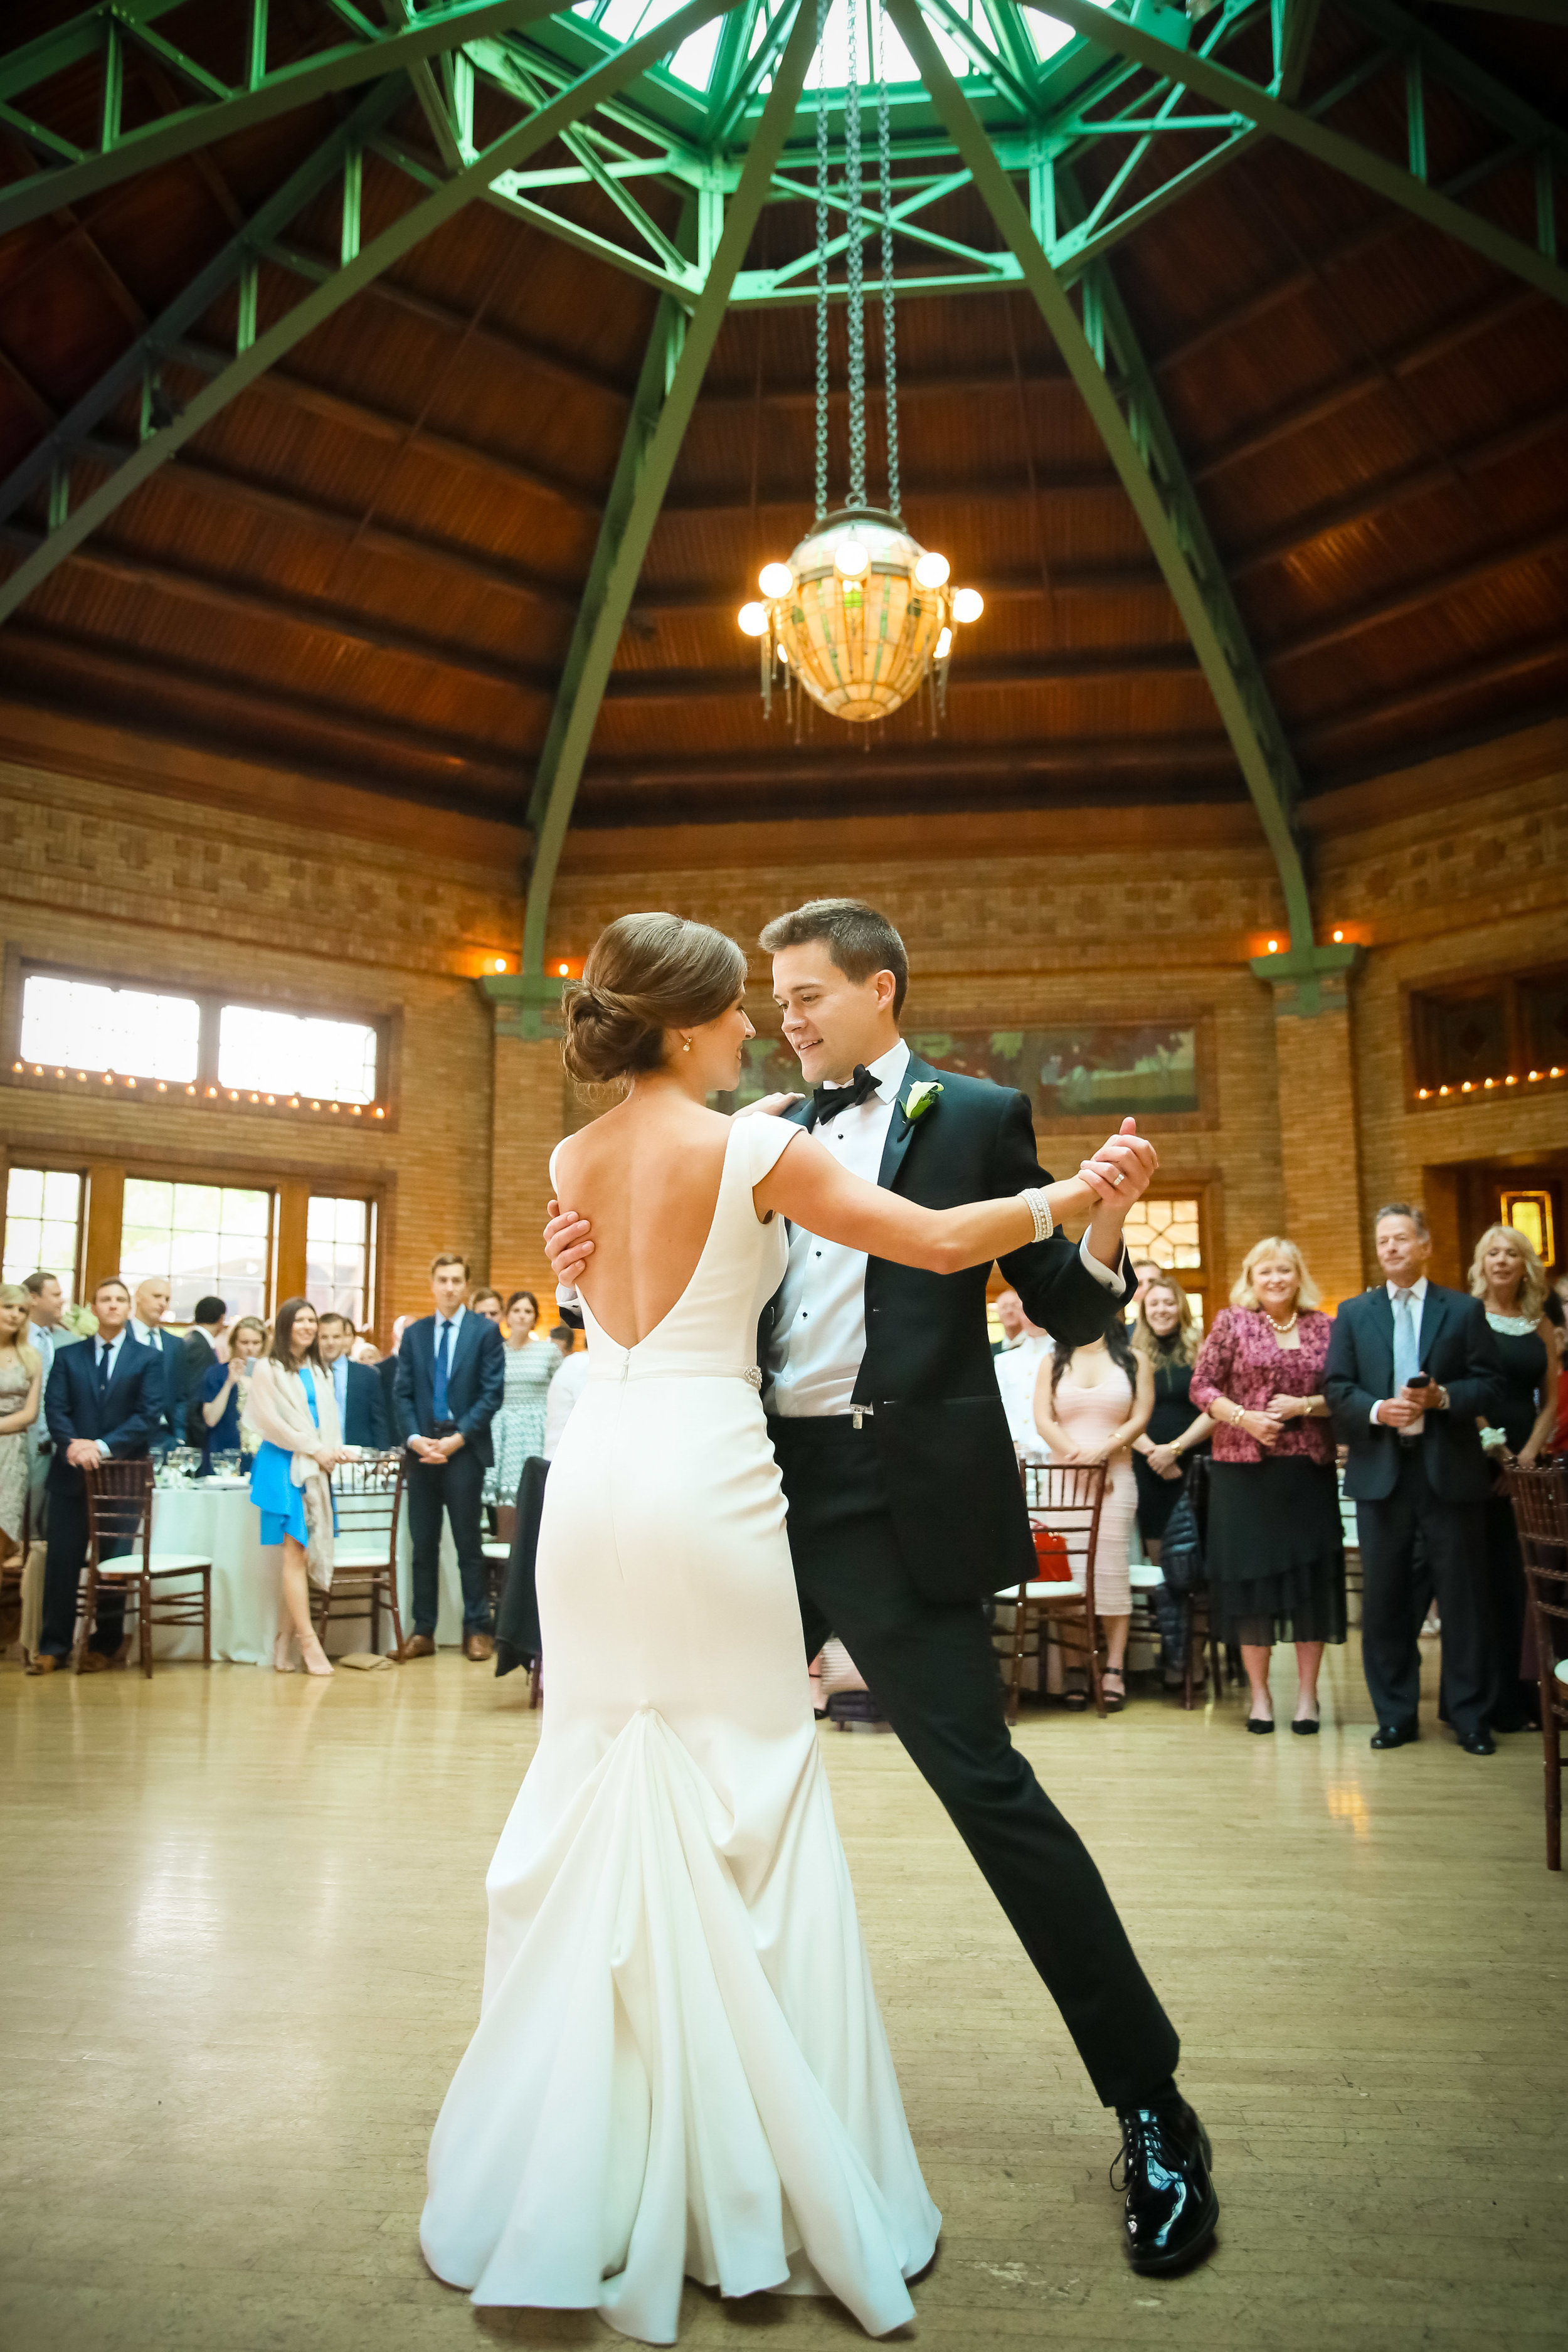 Ballroom first dance between bride and groom